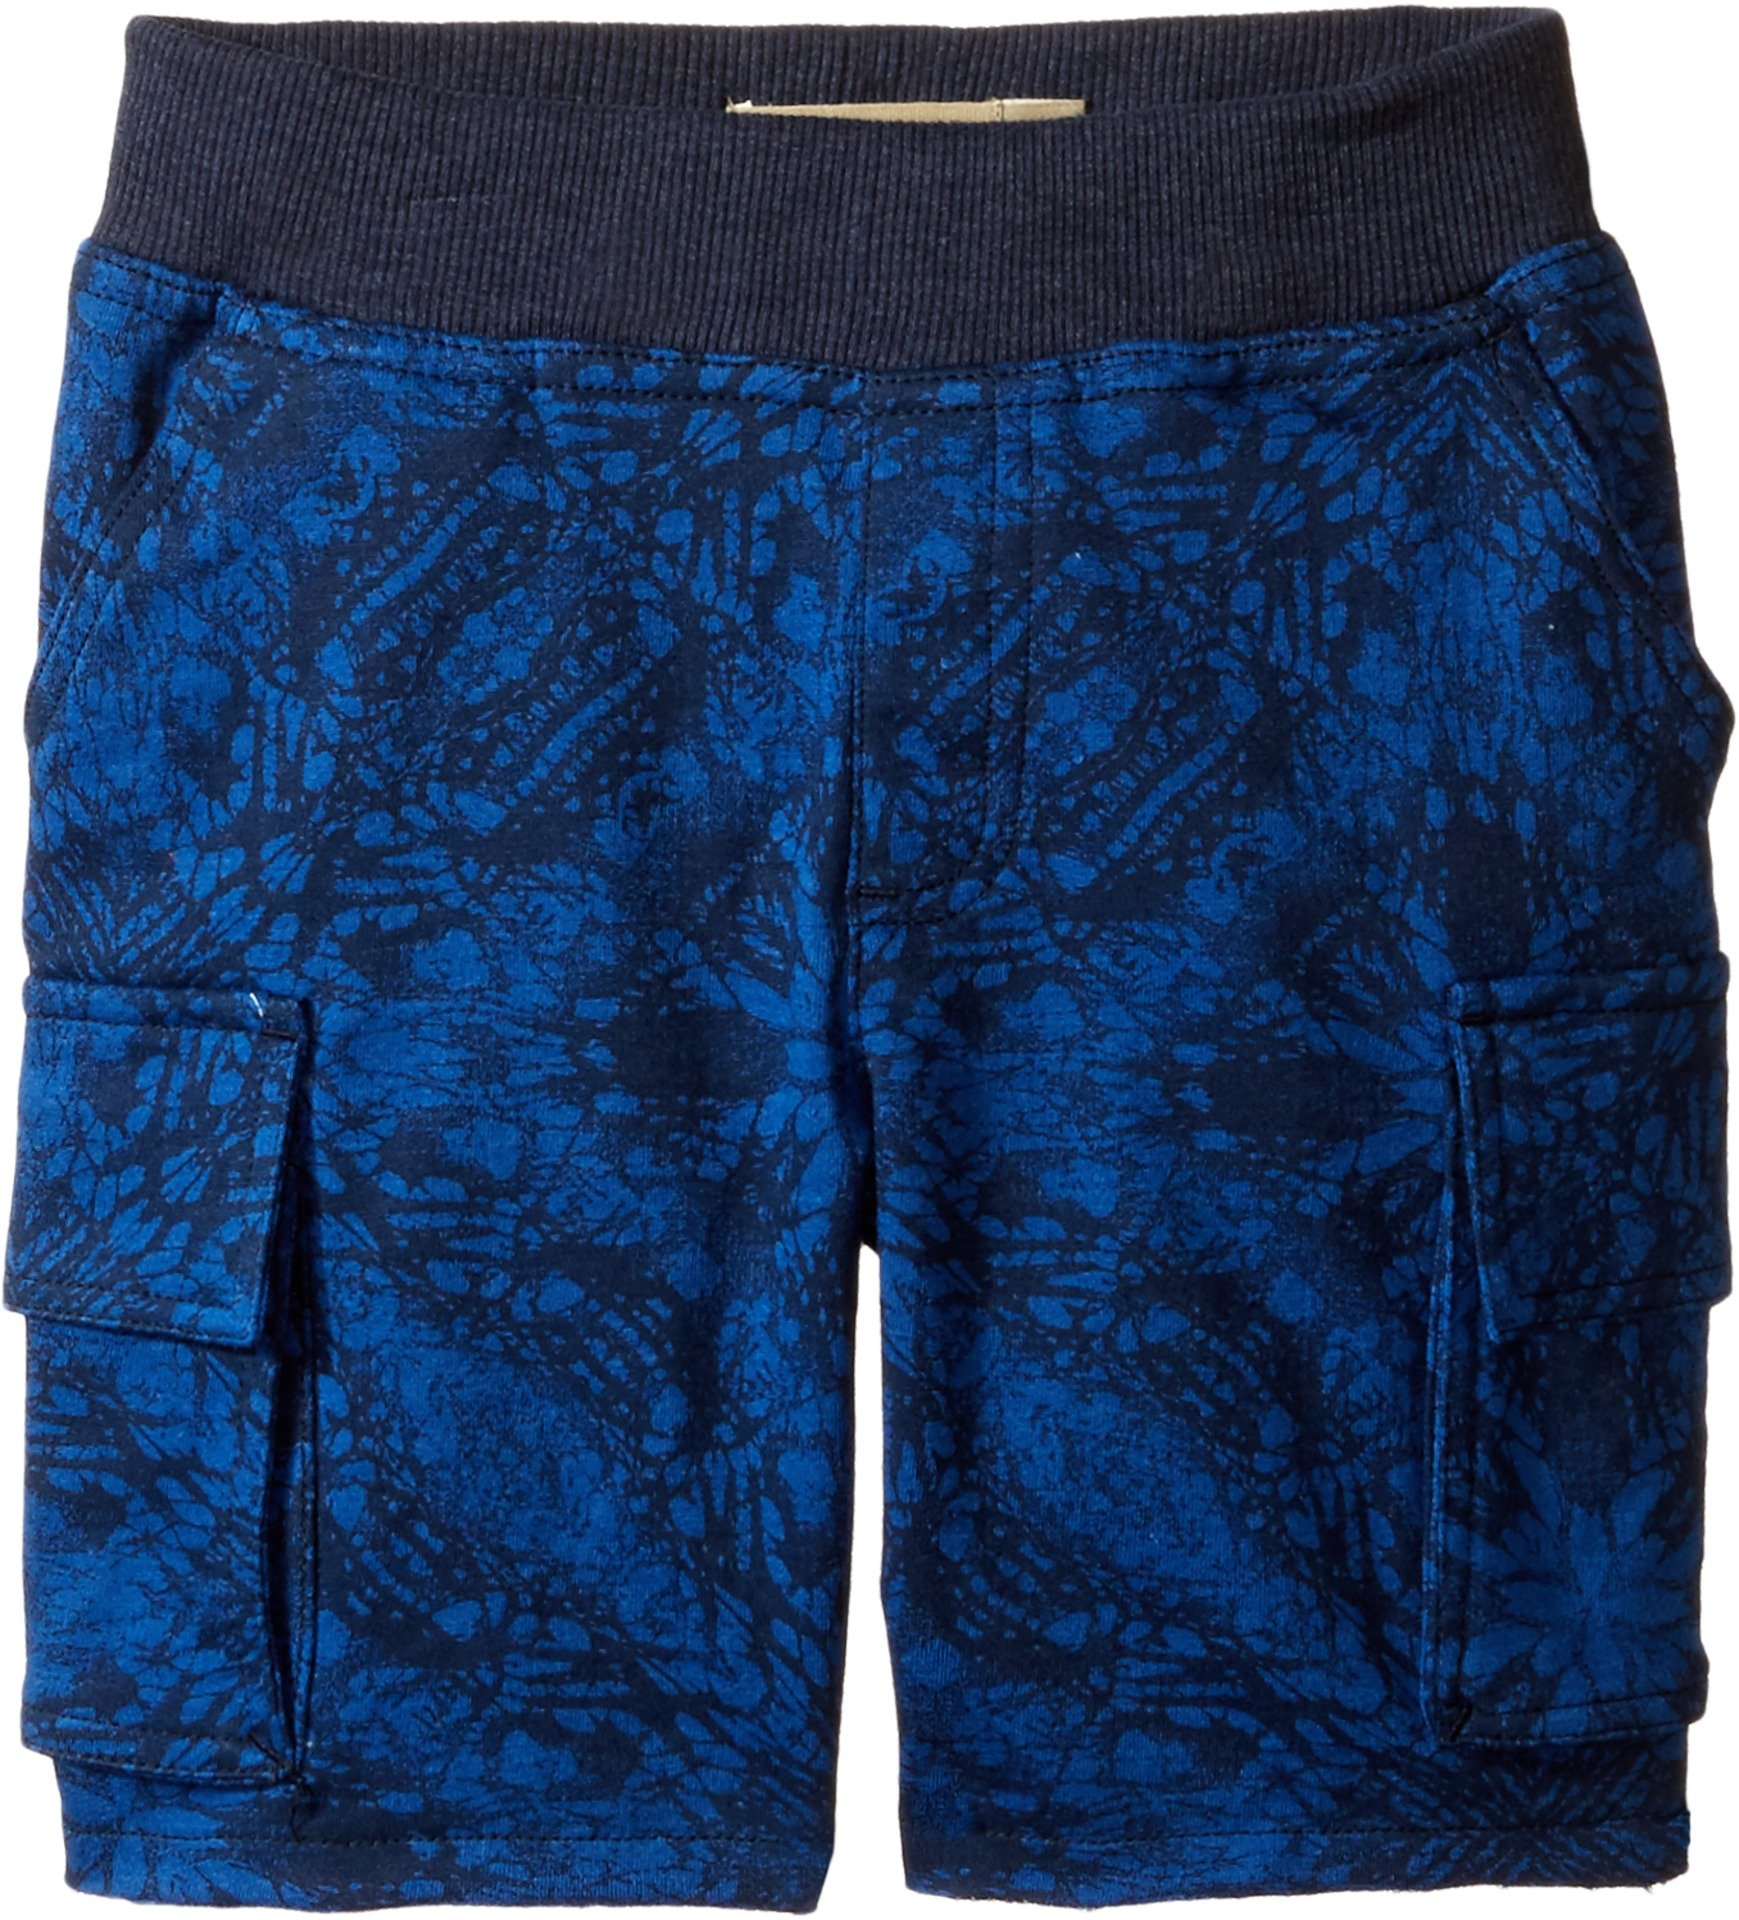 Lucky Brand Kids Baby Boy's Swell Cargo Shorts in French Terry (Toddler) Black Iris Shorts